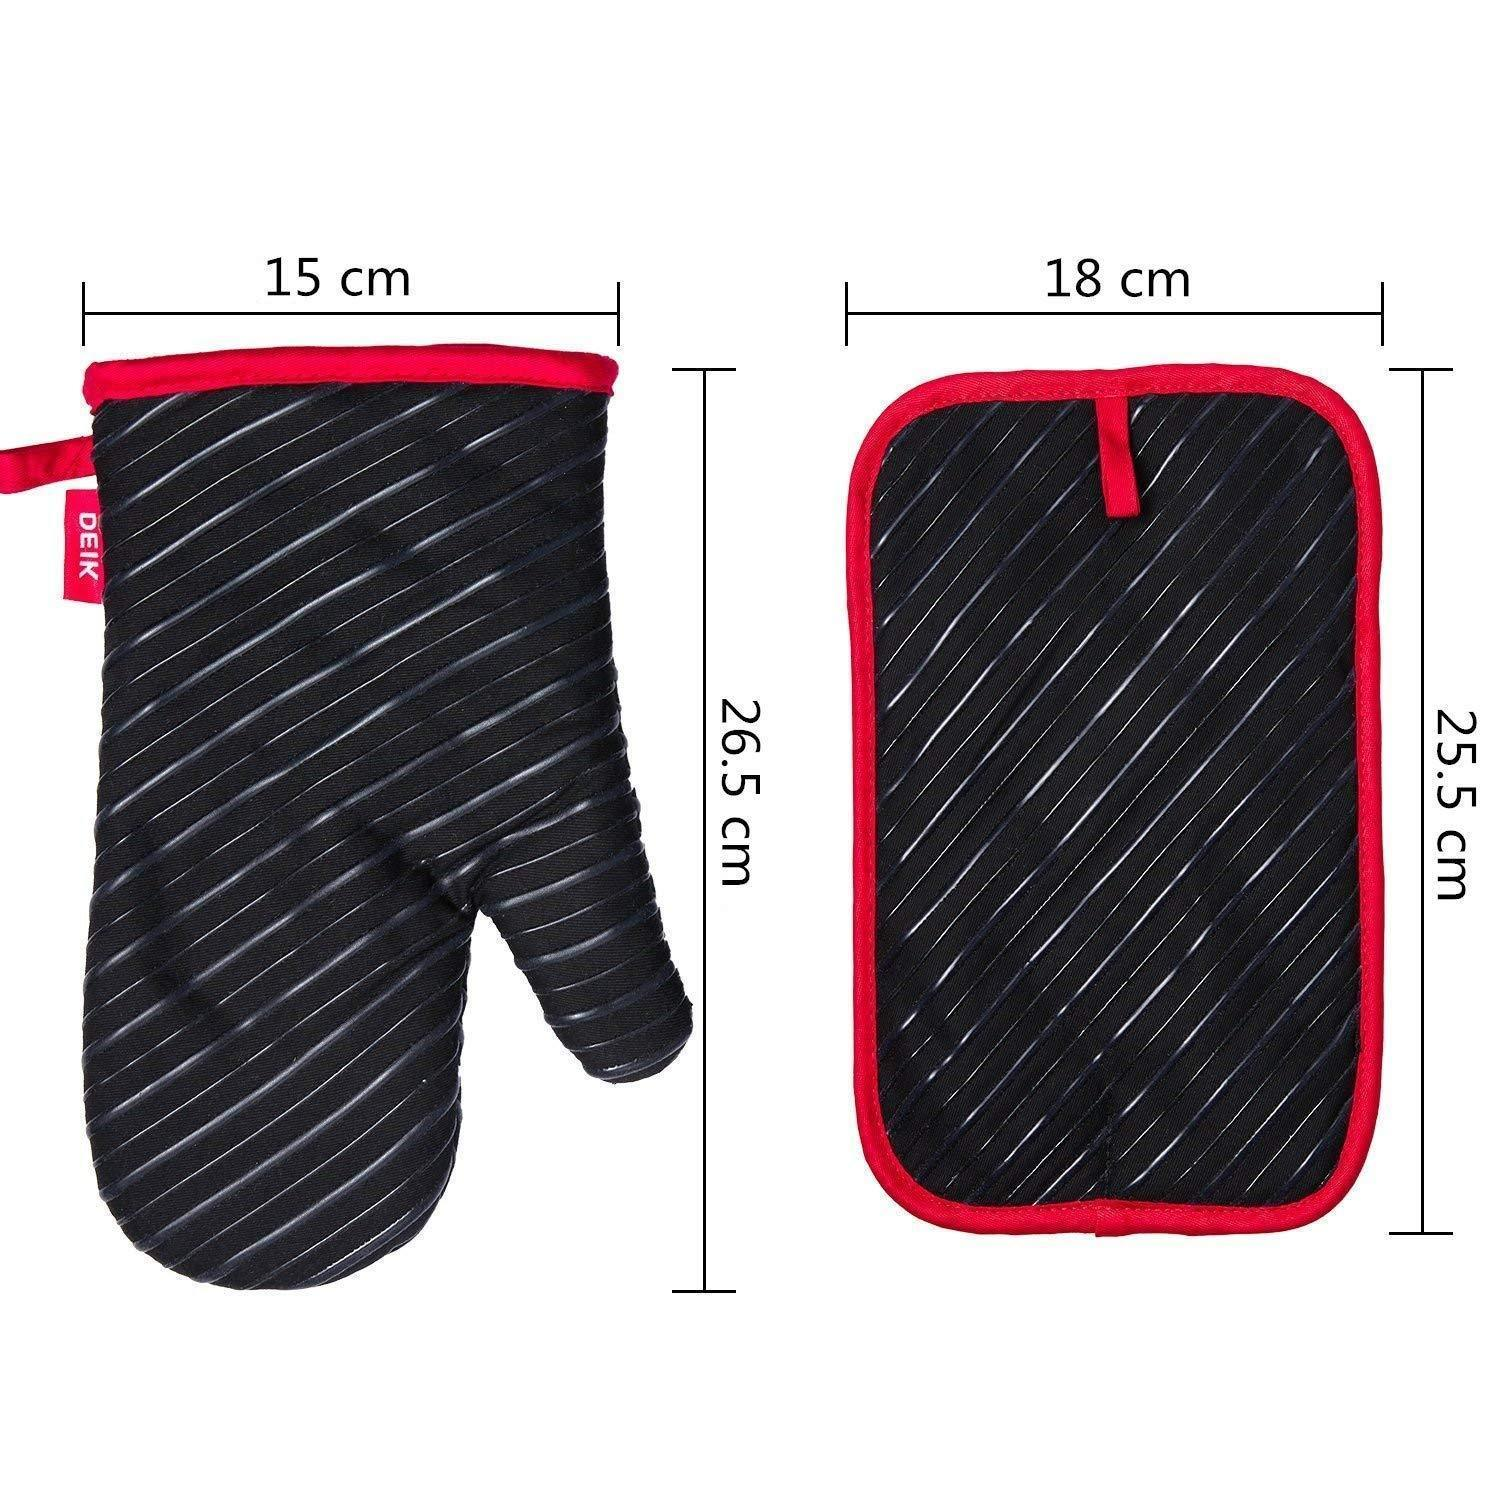 Discover the best deik oven mitts and potholders 4 piece sets for kitchen counter safe mats and advanced heat resistant oven mitt non slip textured grip pot holders nano technology